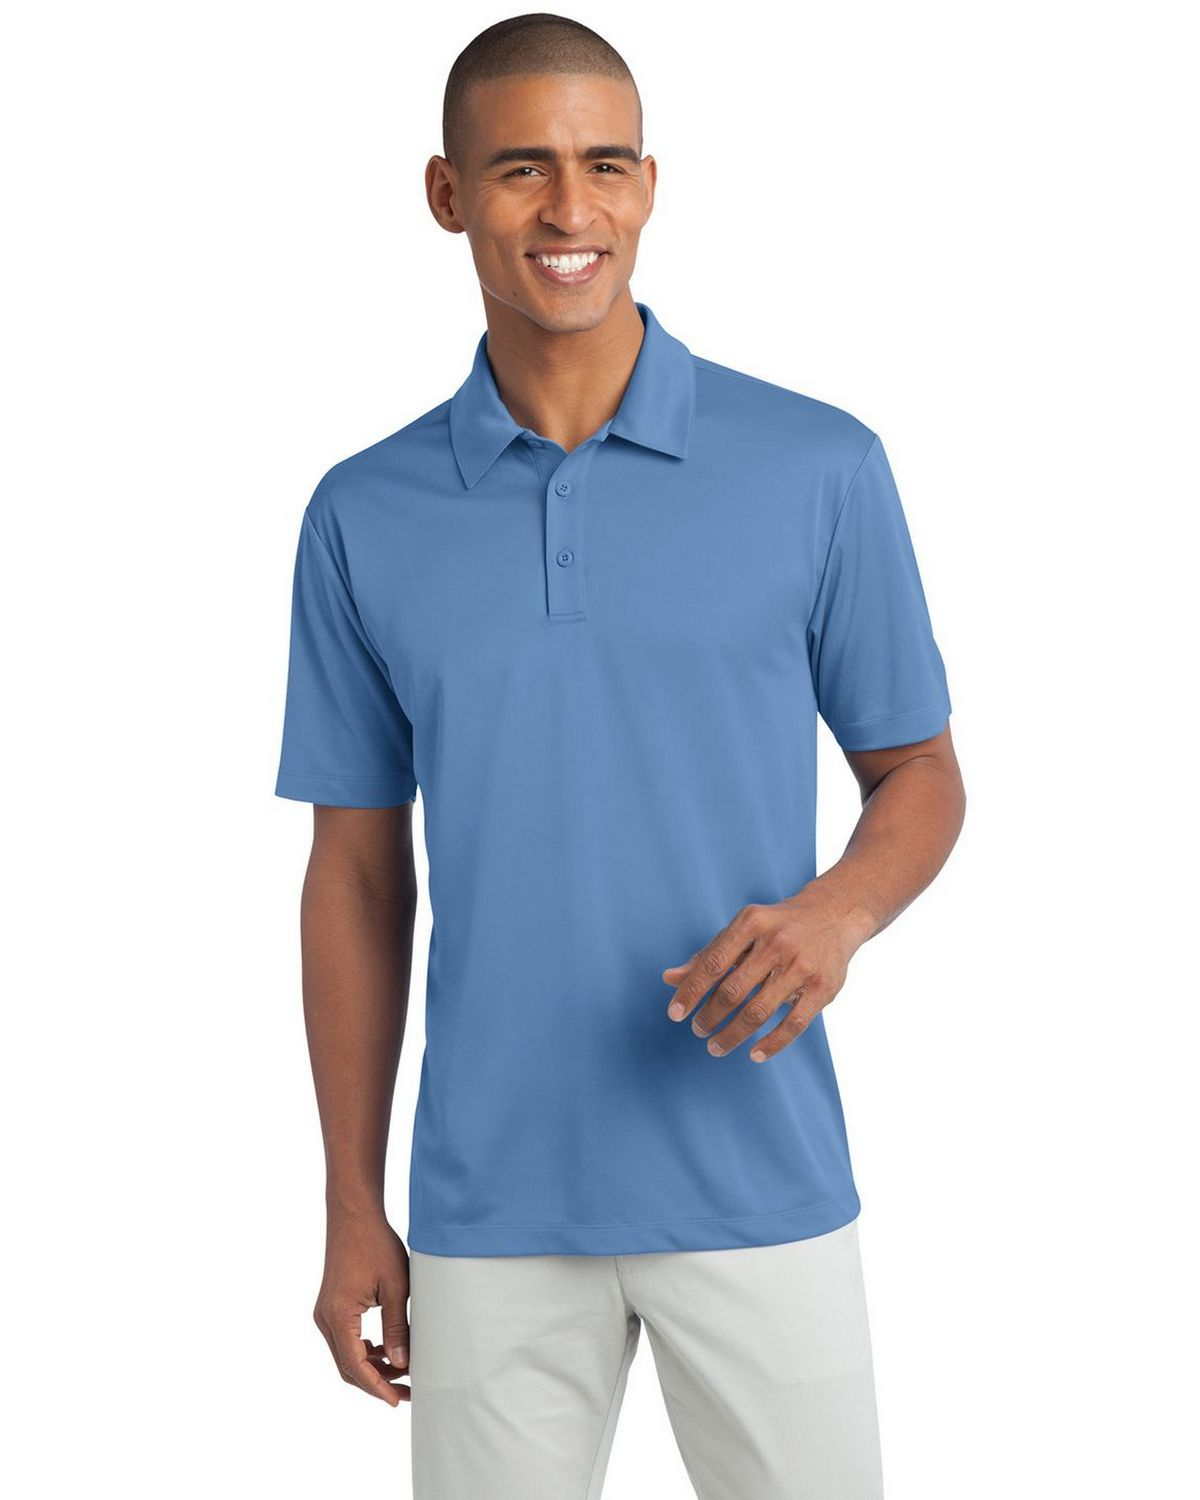 Port Authority K540 Men's Silk Touch Performance Polo - Carolina Blue - XS #silk